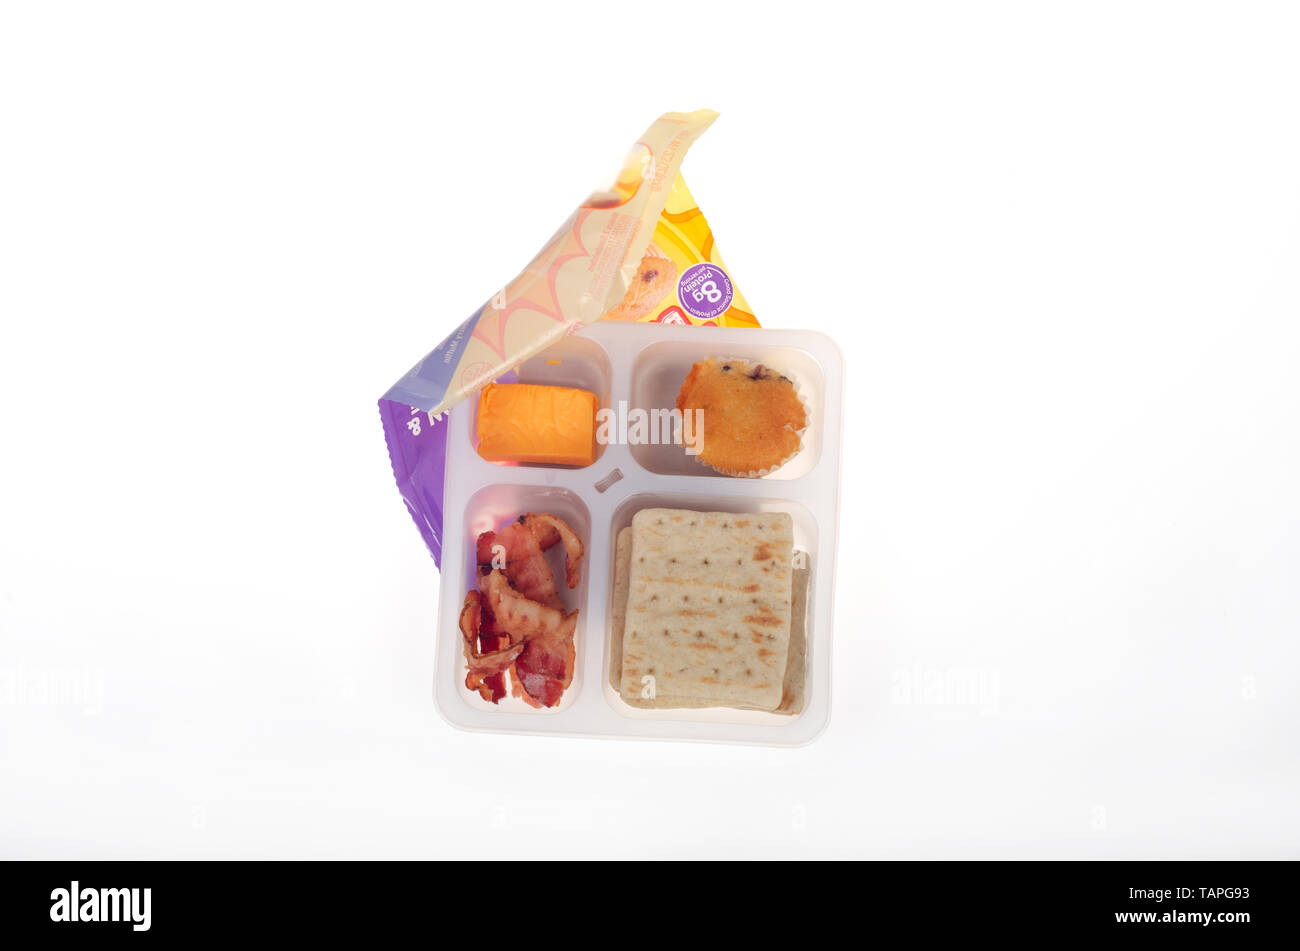 Oscar Mayer Brunchables with bacon, cheese, crackers and a muffin - Stock Image